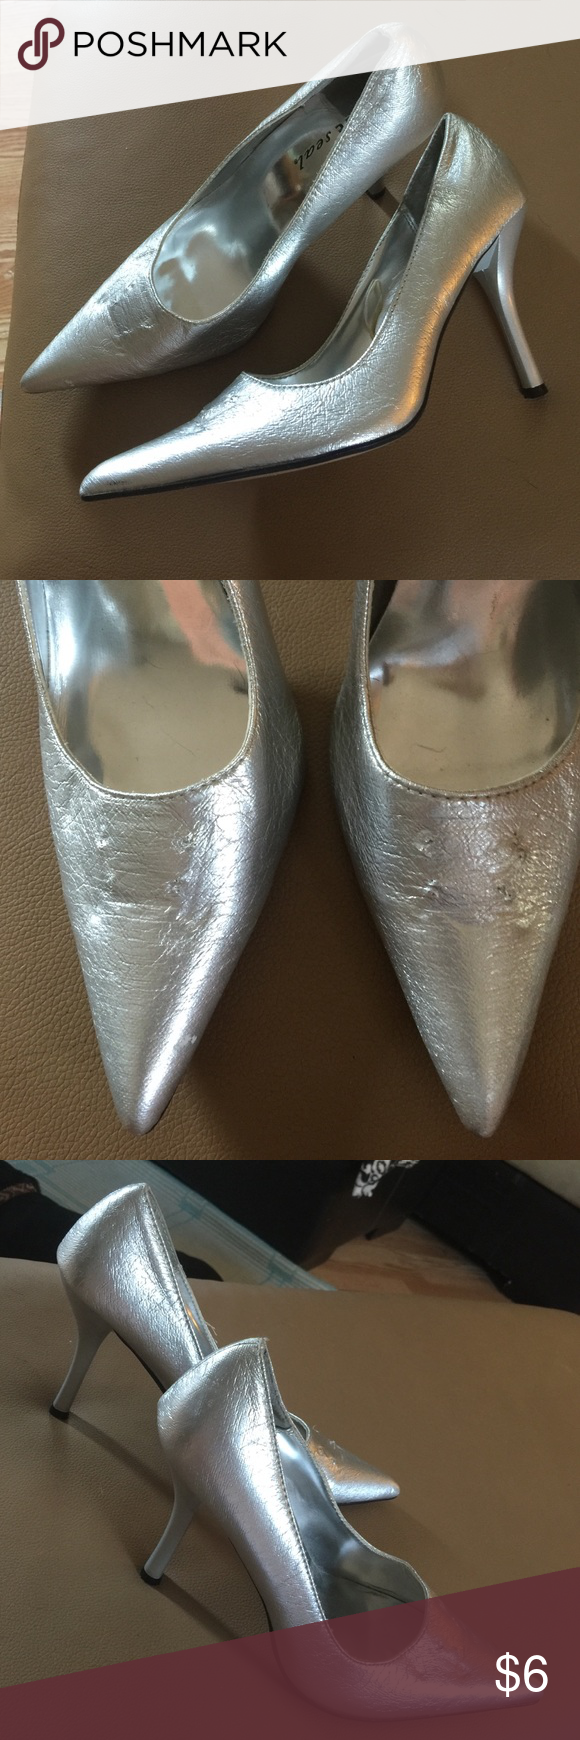 Wet Seal silver heels Basic pointed toe pump. Second pic shows small marks on front of shoe where rhinestones were removed. Needed solid shoe for photo shoot. Always considered attaching a shoe pin but never did. True size 7 Wet Seal Shoes Heels